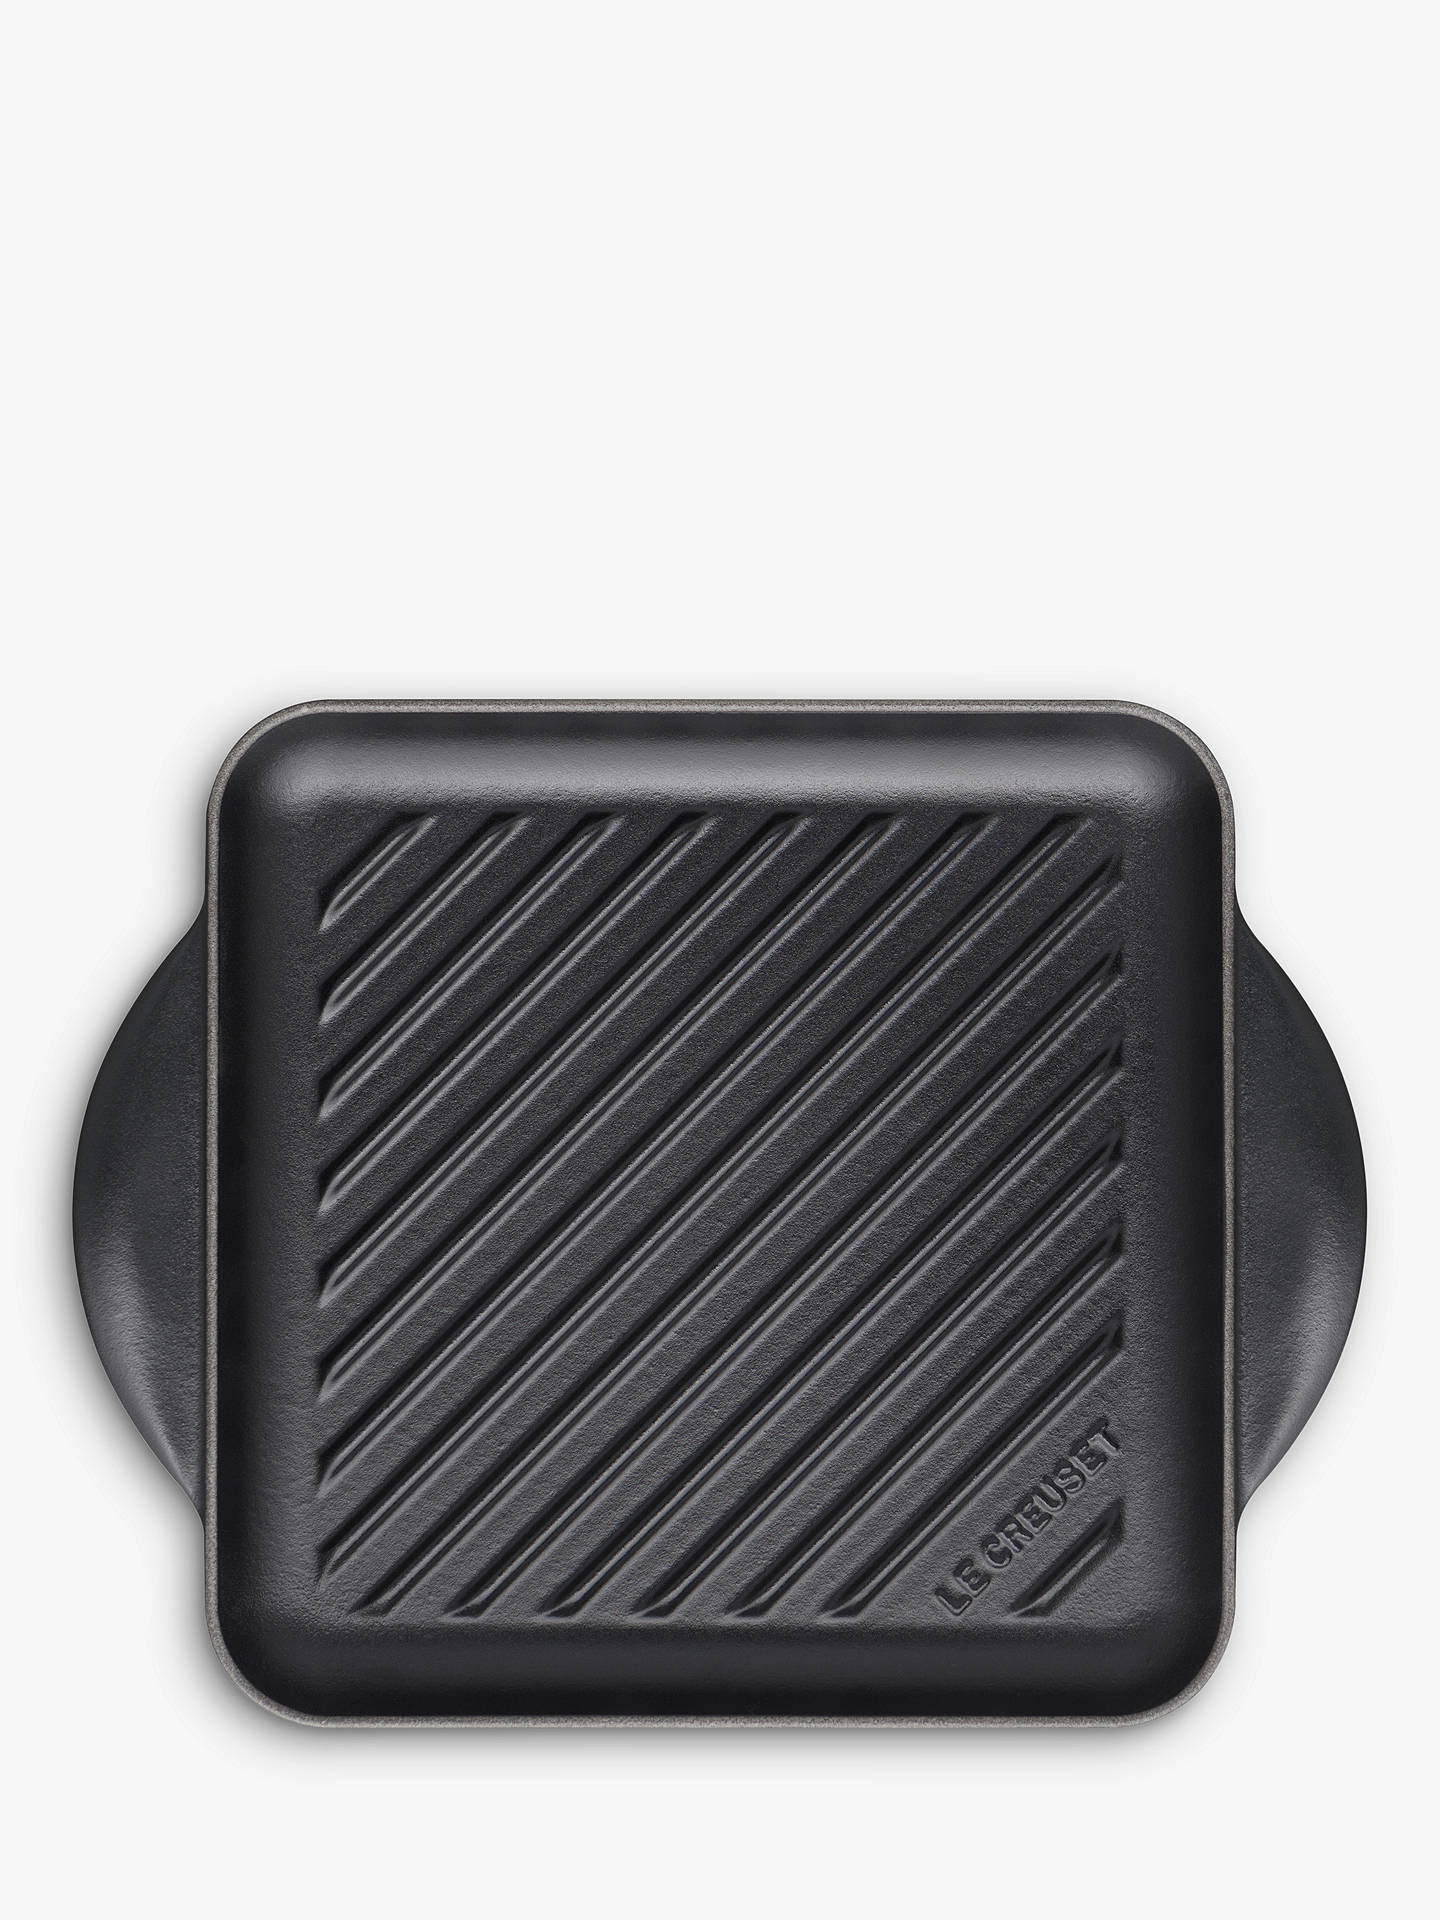 Le Creuset Essentials Cast Iron 24cm Skinny Square Grill, Satin Black by Le Creuset